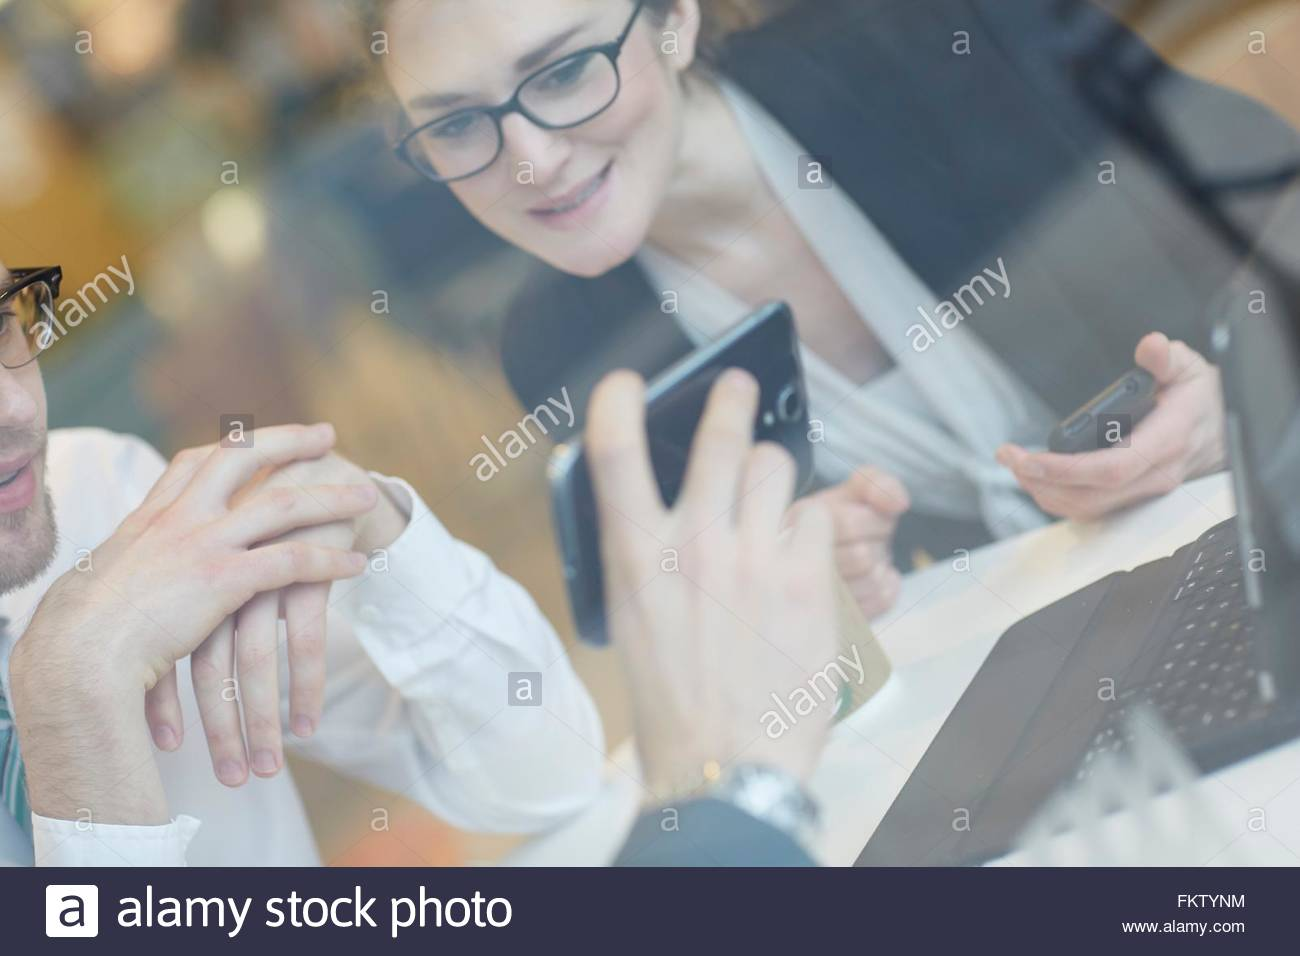 Angled view through window of colleagues wearing eye glasses looking at smartphone smiling - Stock Image